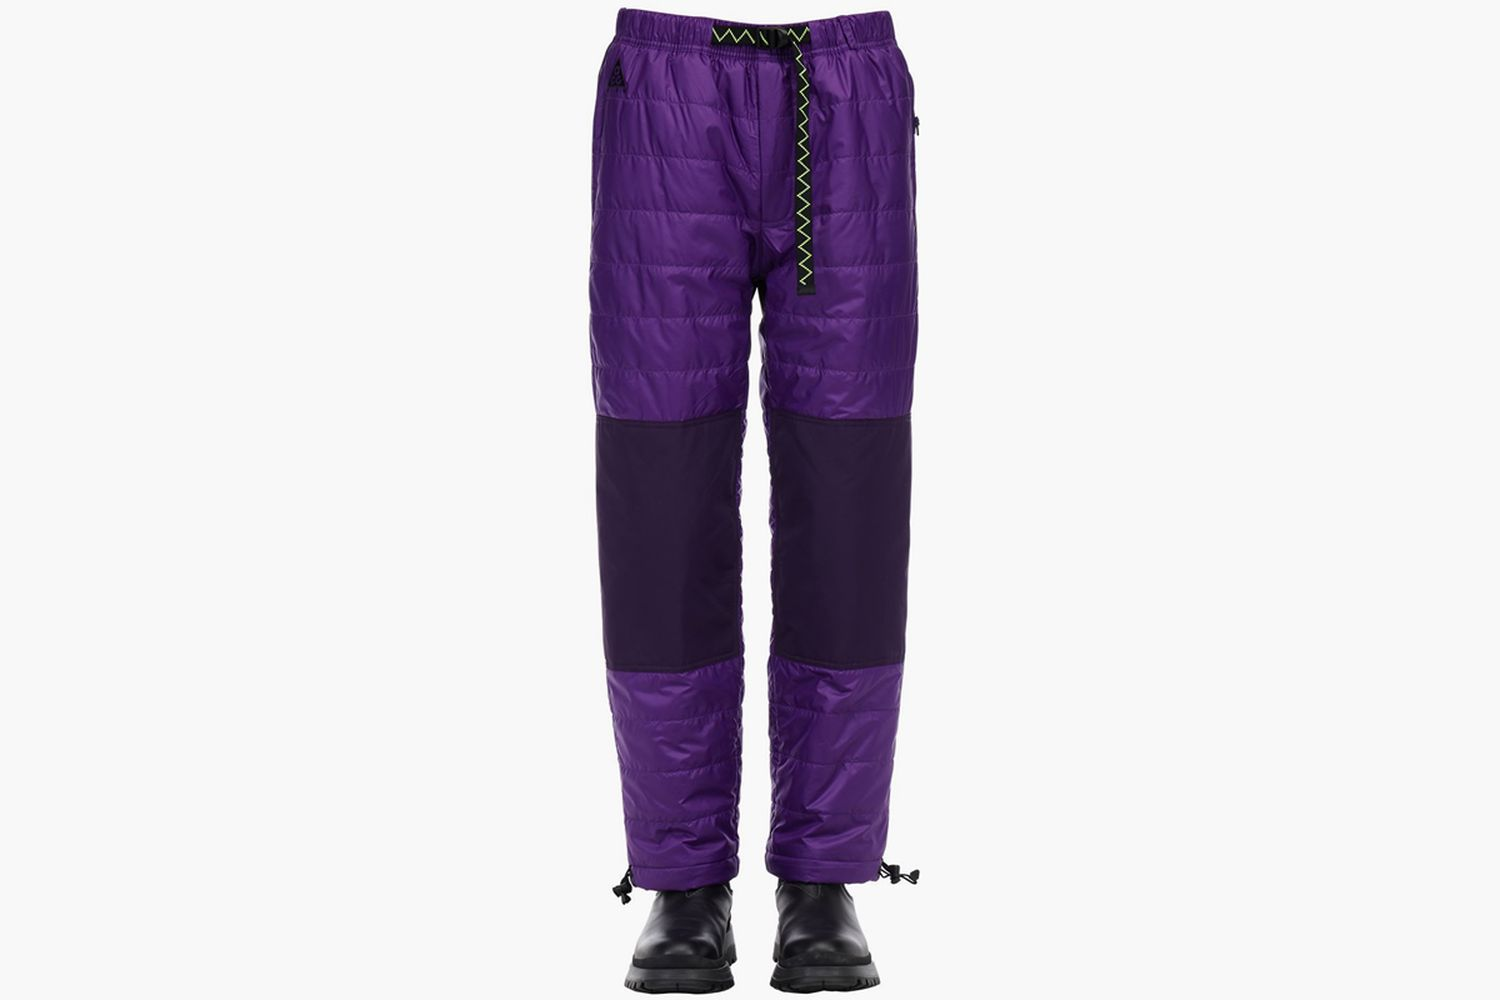 ACG PrimaLoft Trail Pants